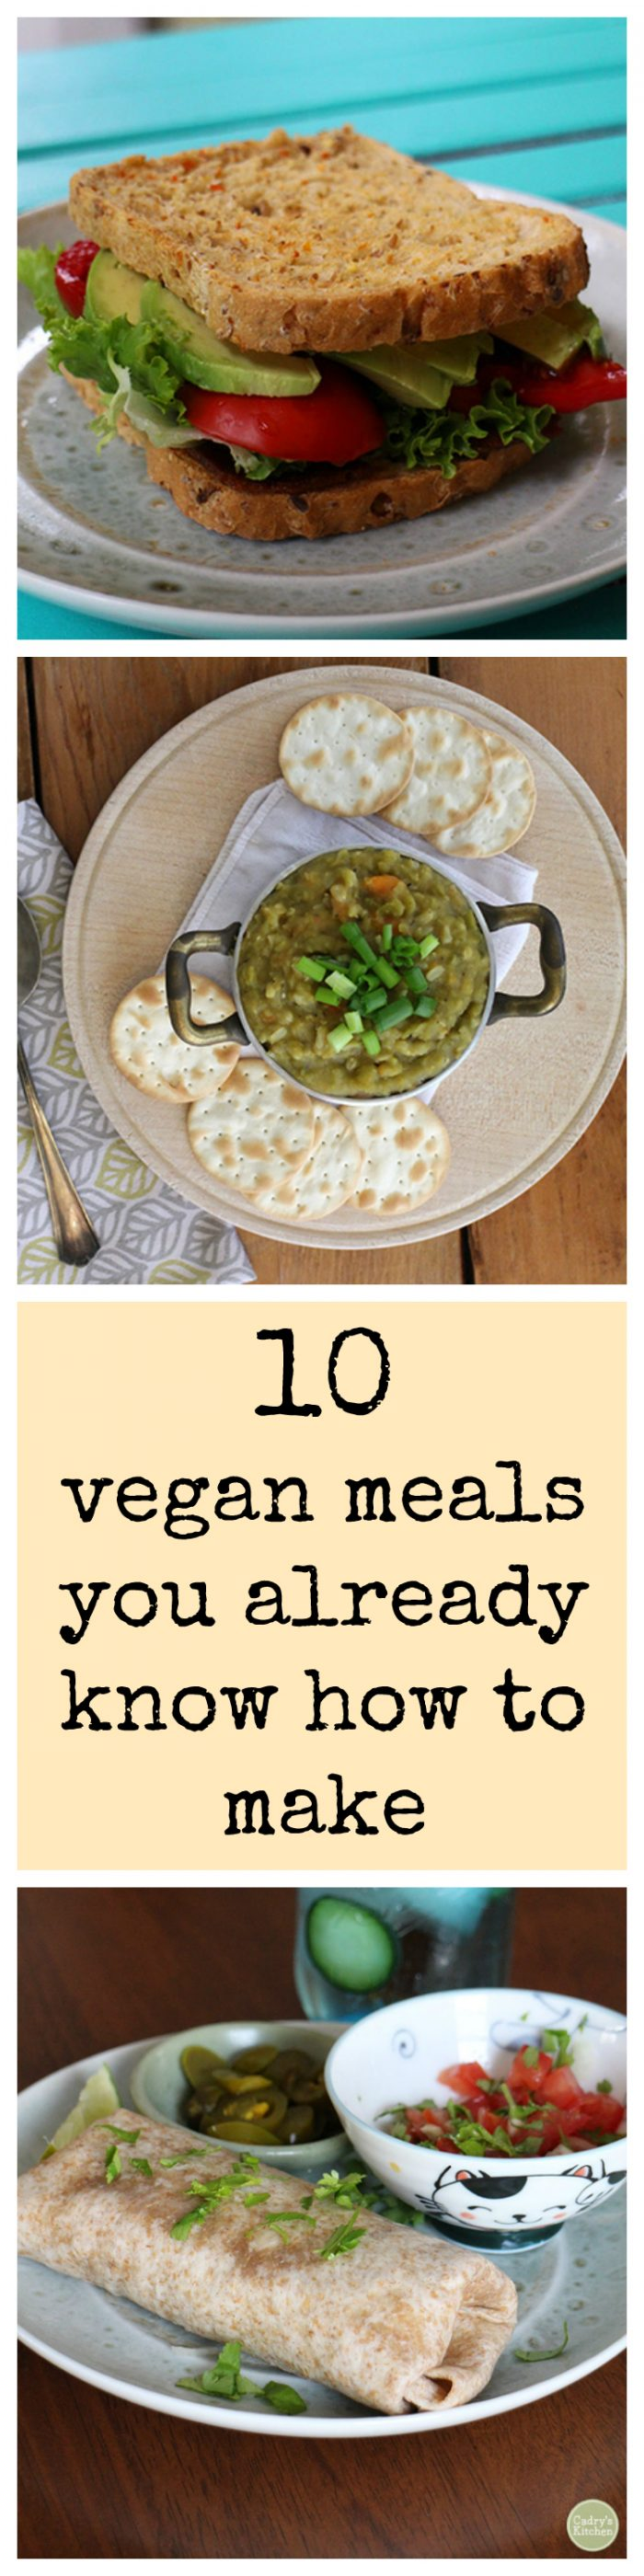 Being vegan doesn't have to be hard! Here are 10 vegan meals you already know how to make. | cadryskitchen.com